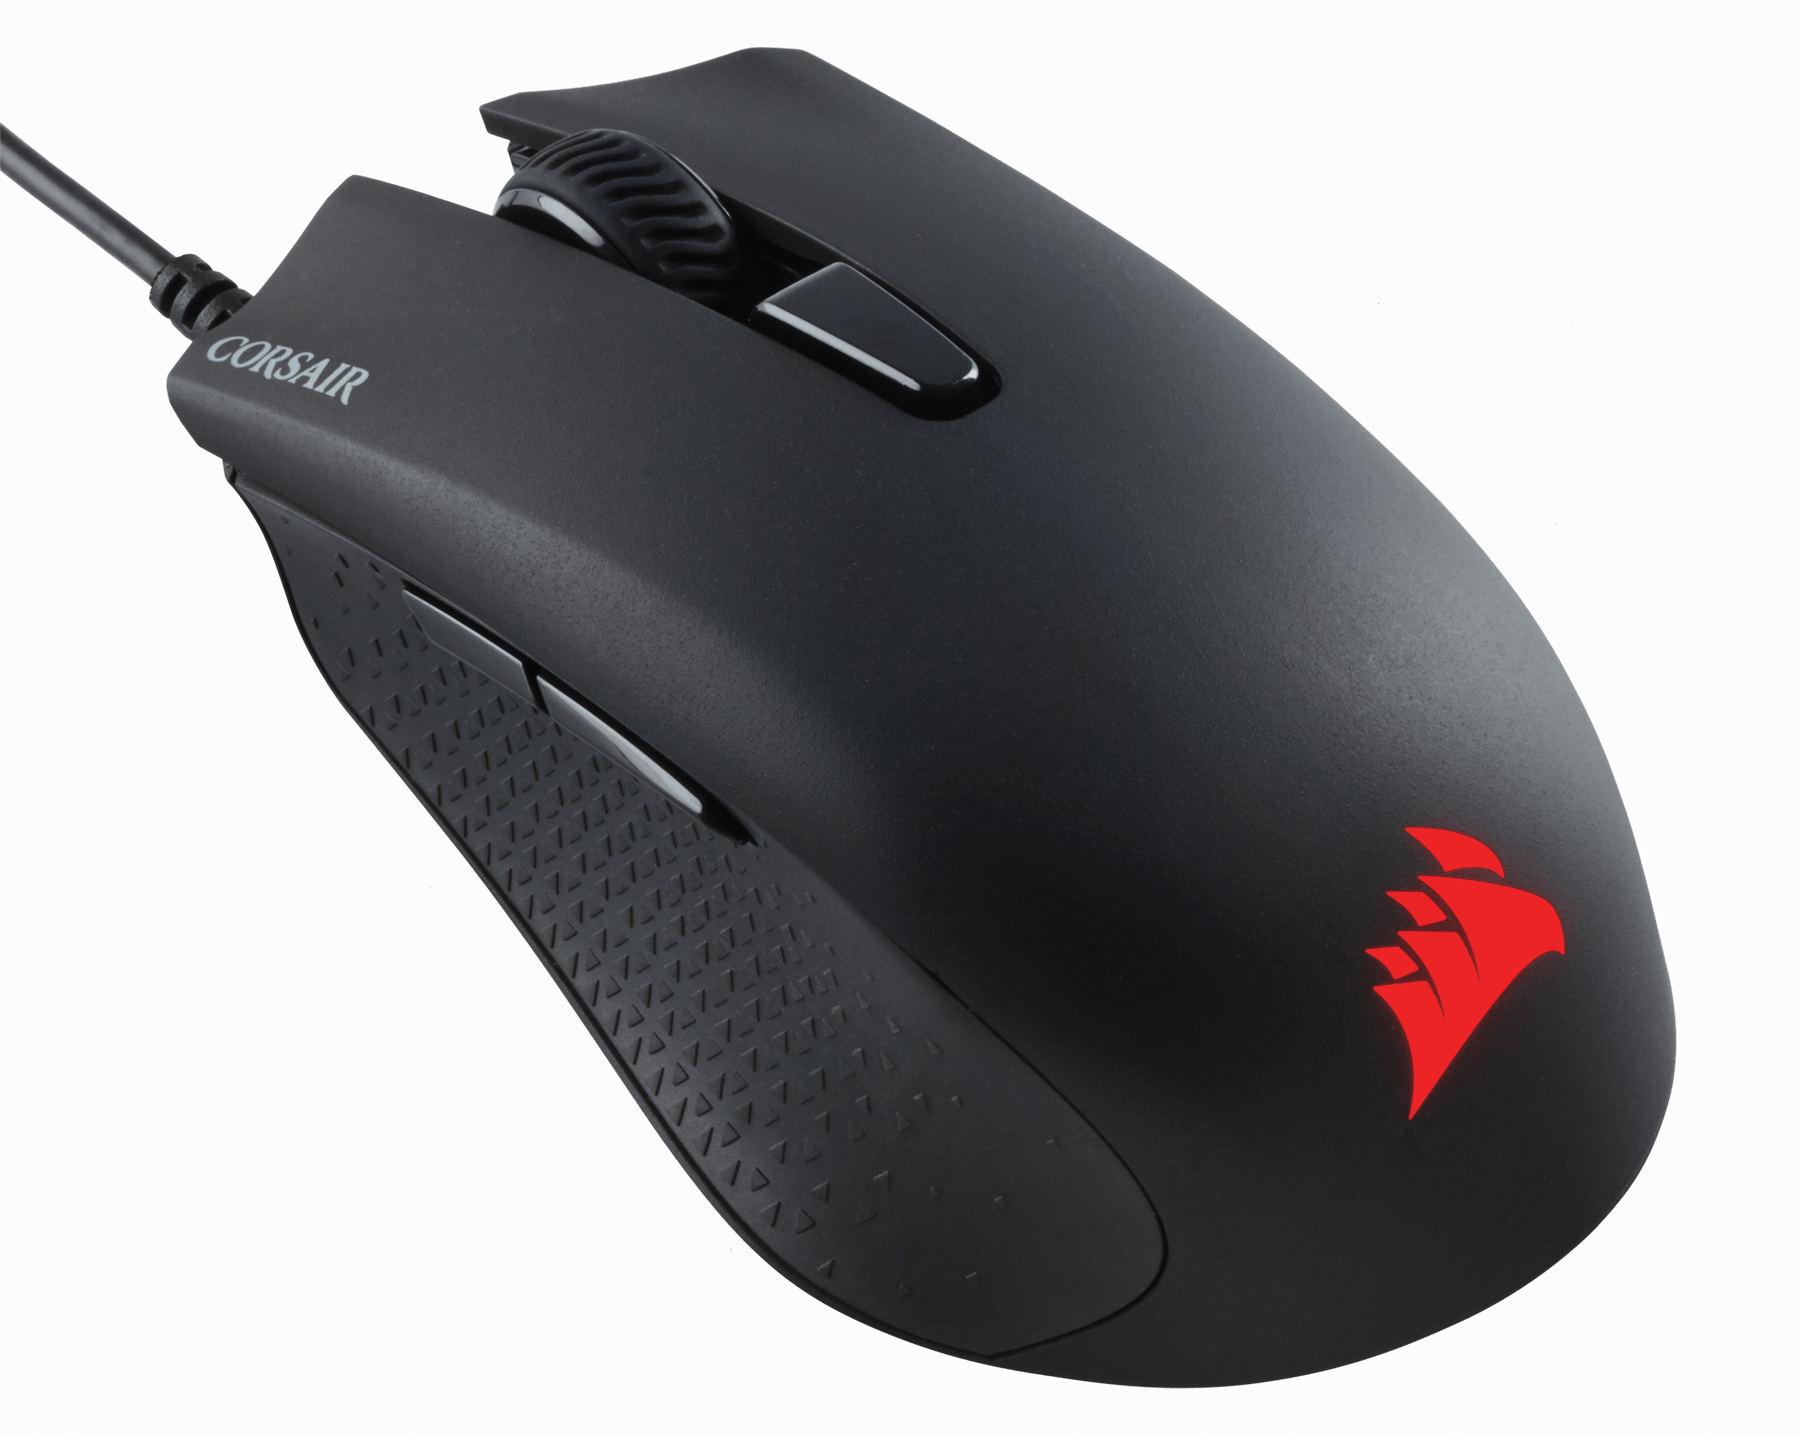 hight resolution of the harpoon rgb mouse is built to perform featuring a 6000 dpi optical gaming sensor with advanced tracking for precise control and lightweight